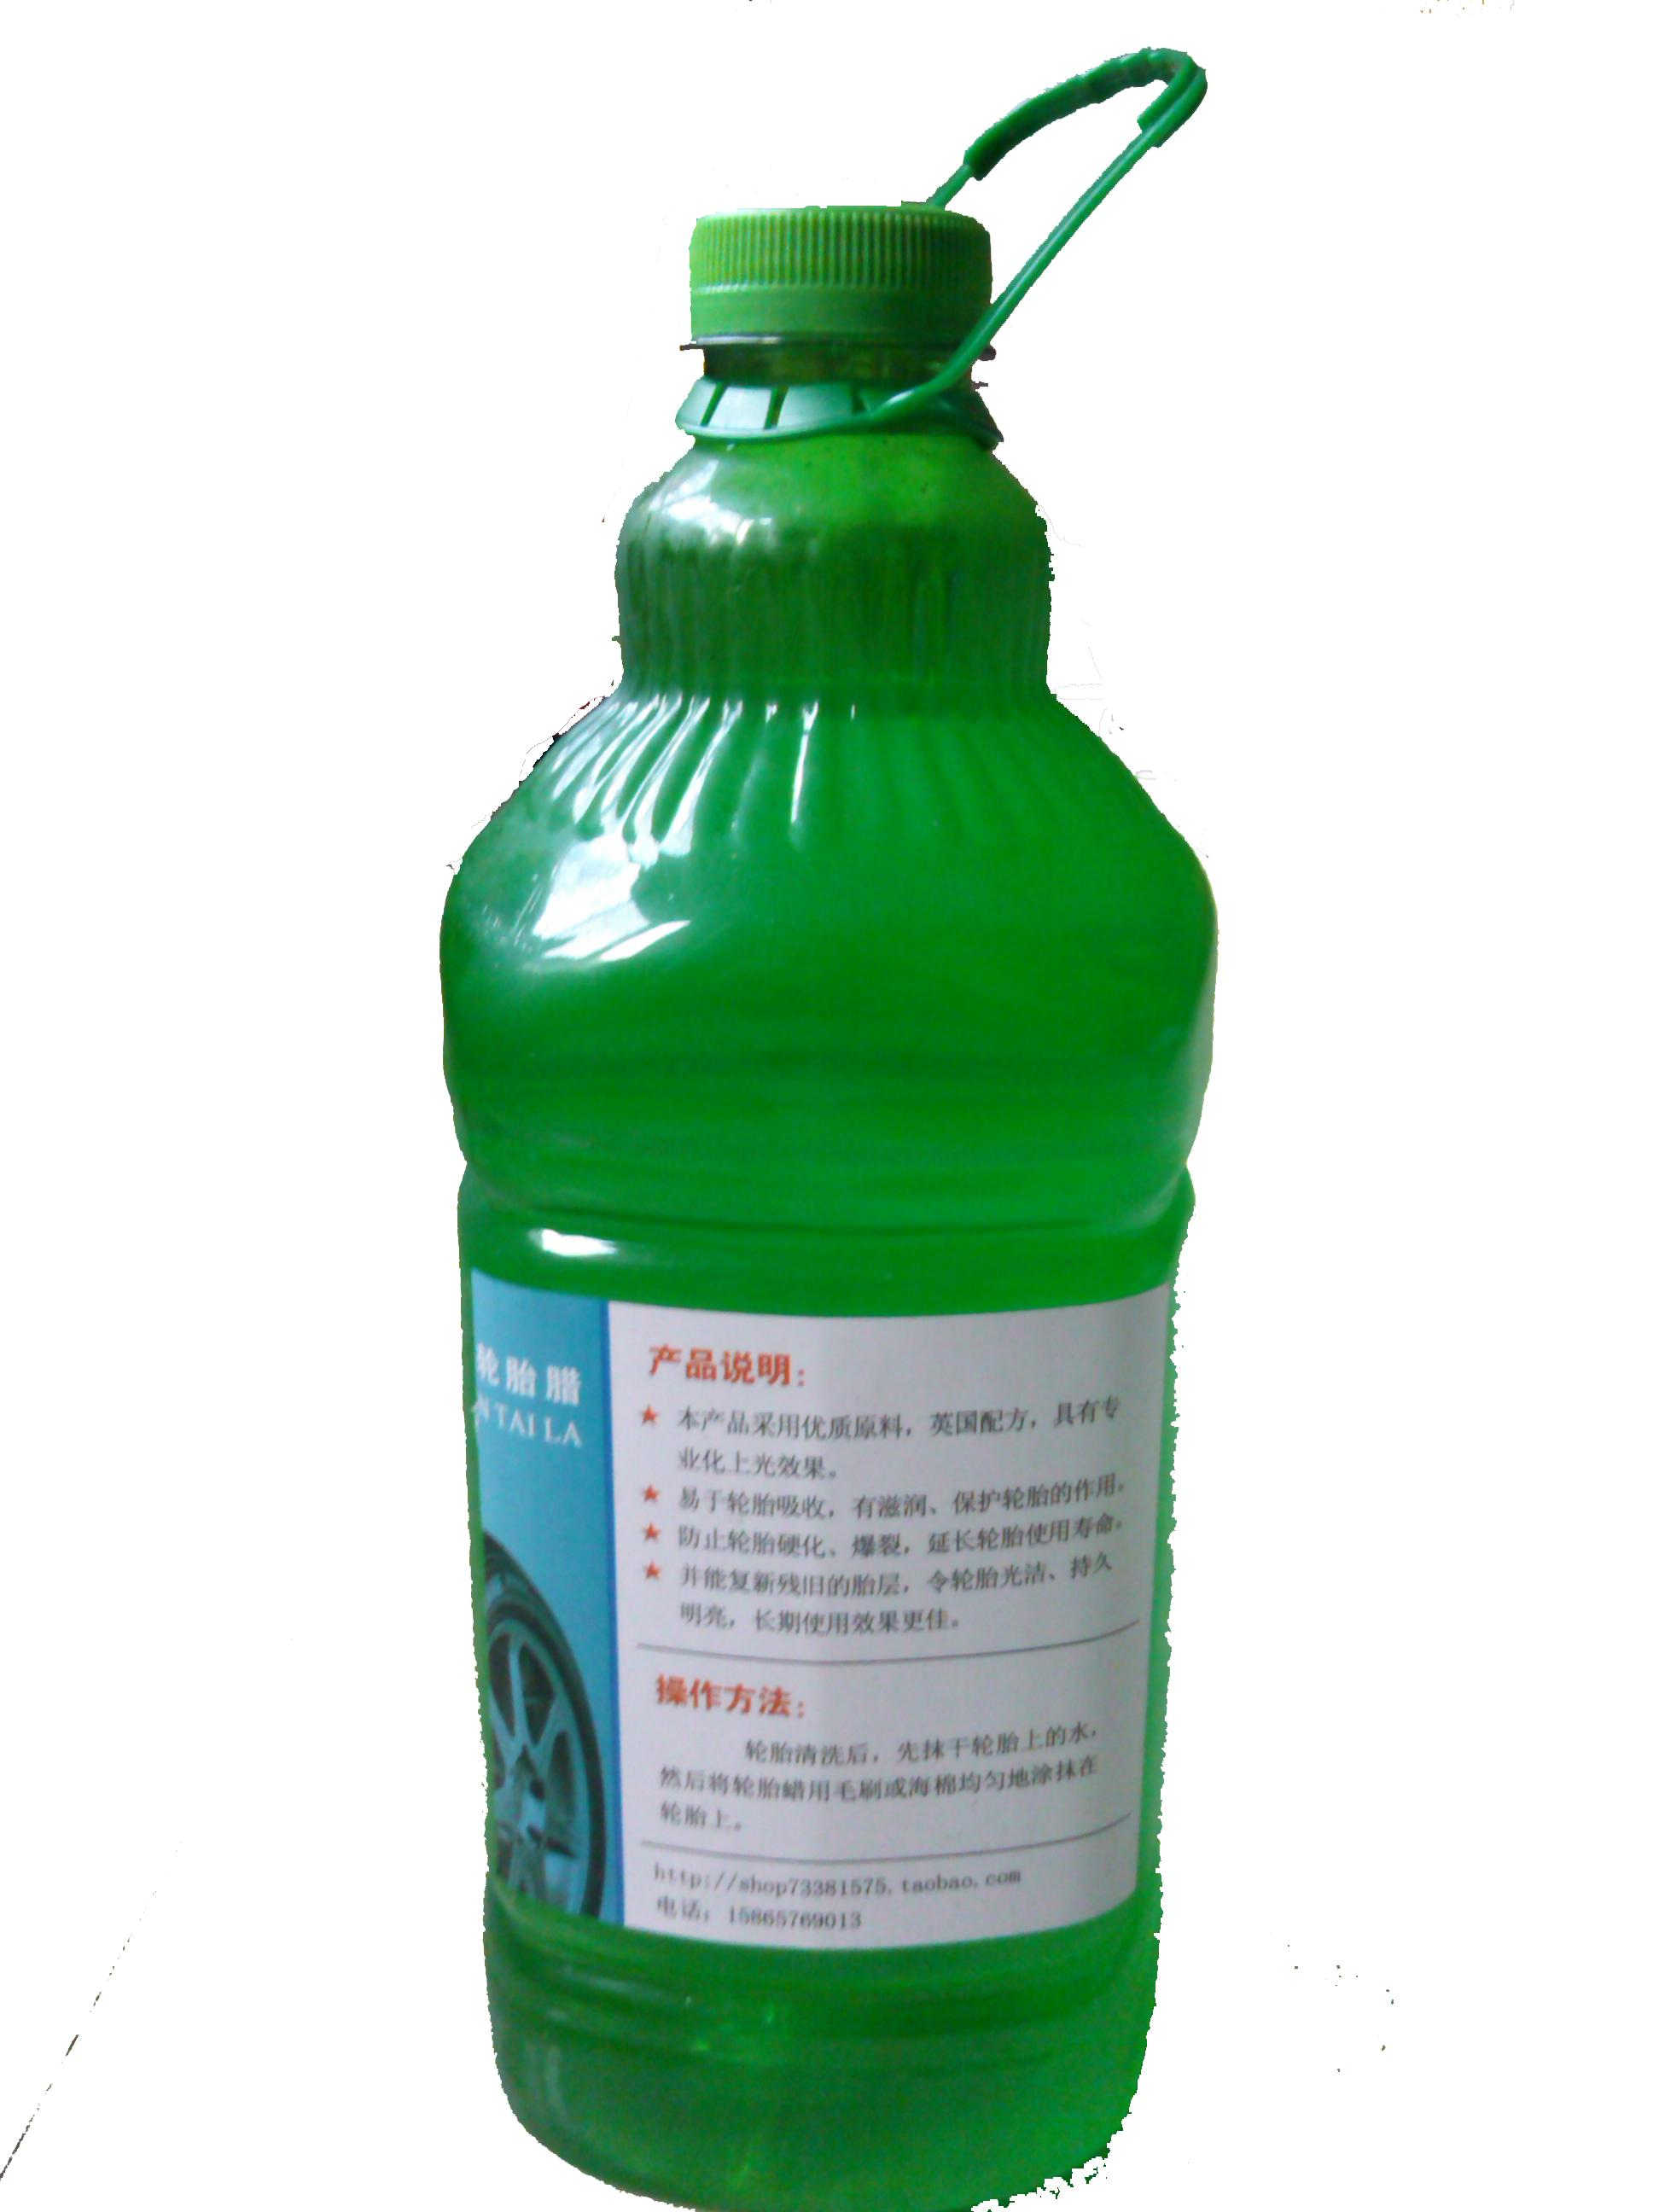 Zero profit tire tire tire wax glaze brightener barrel 1:6 against water 2.2 kg hair brush